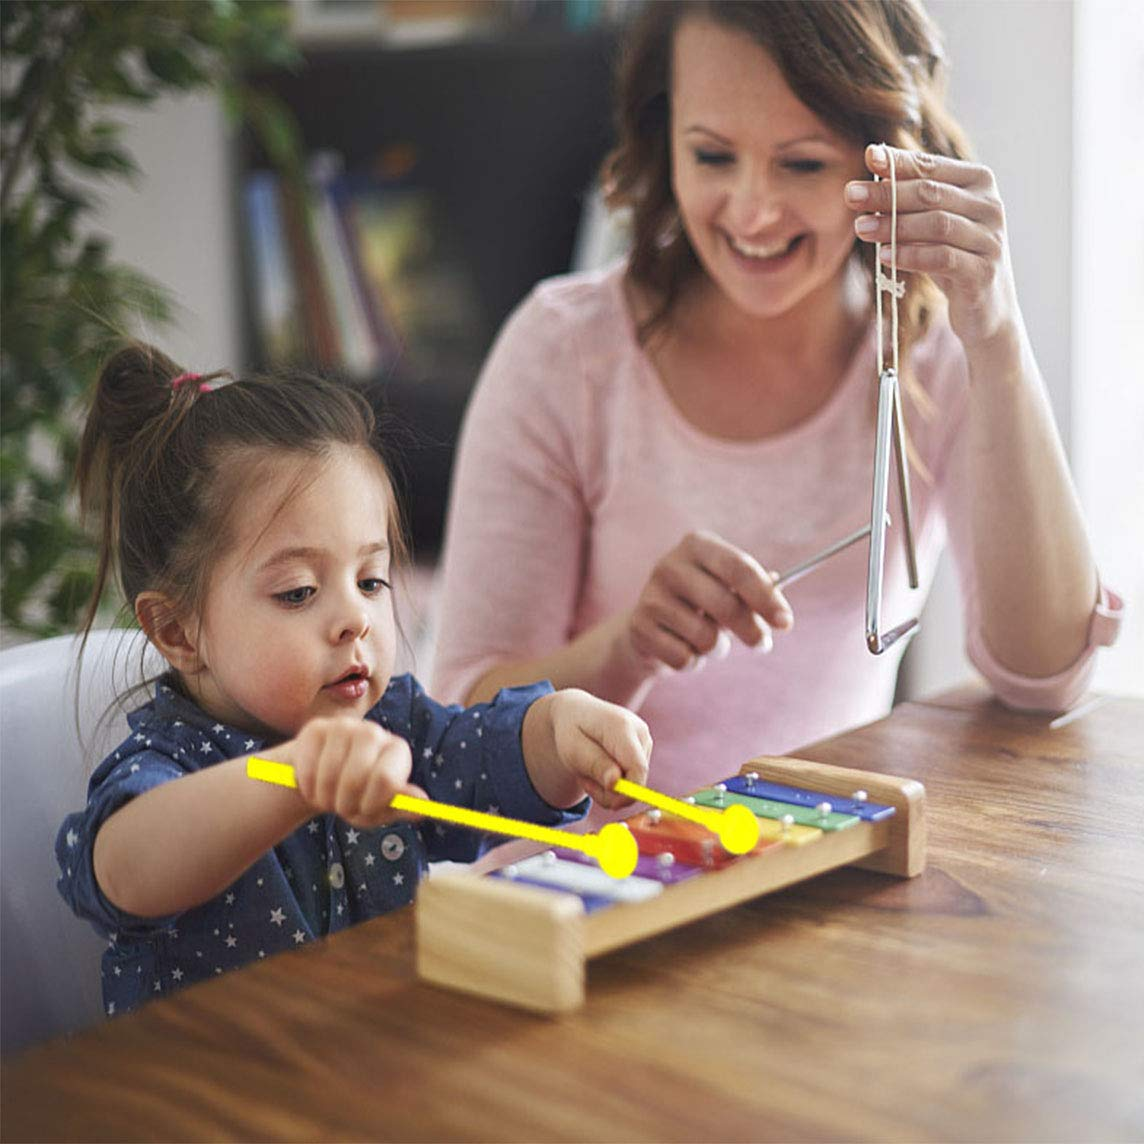 XIYITOY Xylophone for kids,The First Birthday Gift for kids 1-3 Year Old Girl,Boys,Musical Kid Toy for Kids for 4-8 Year Old Boys Gift,Whith Two Child-Safe Mallets for 2-6 Year Old for Making Fun Musi by XIYITOY (Image #2)